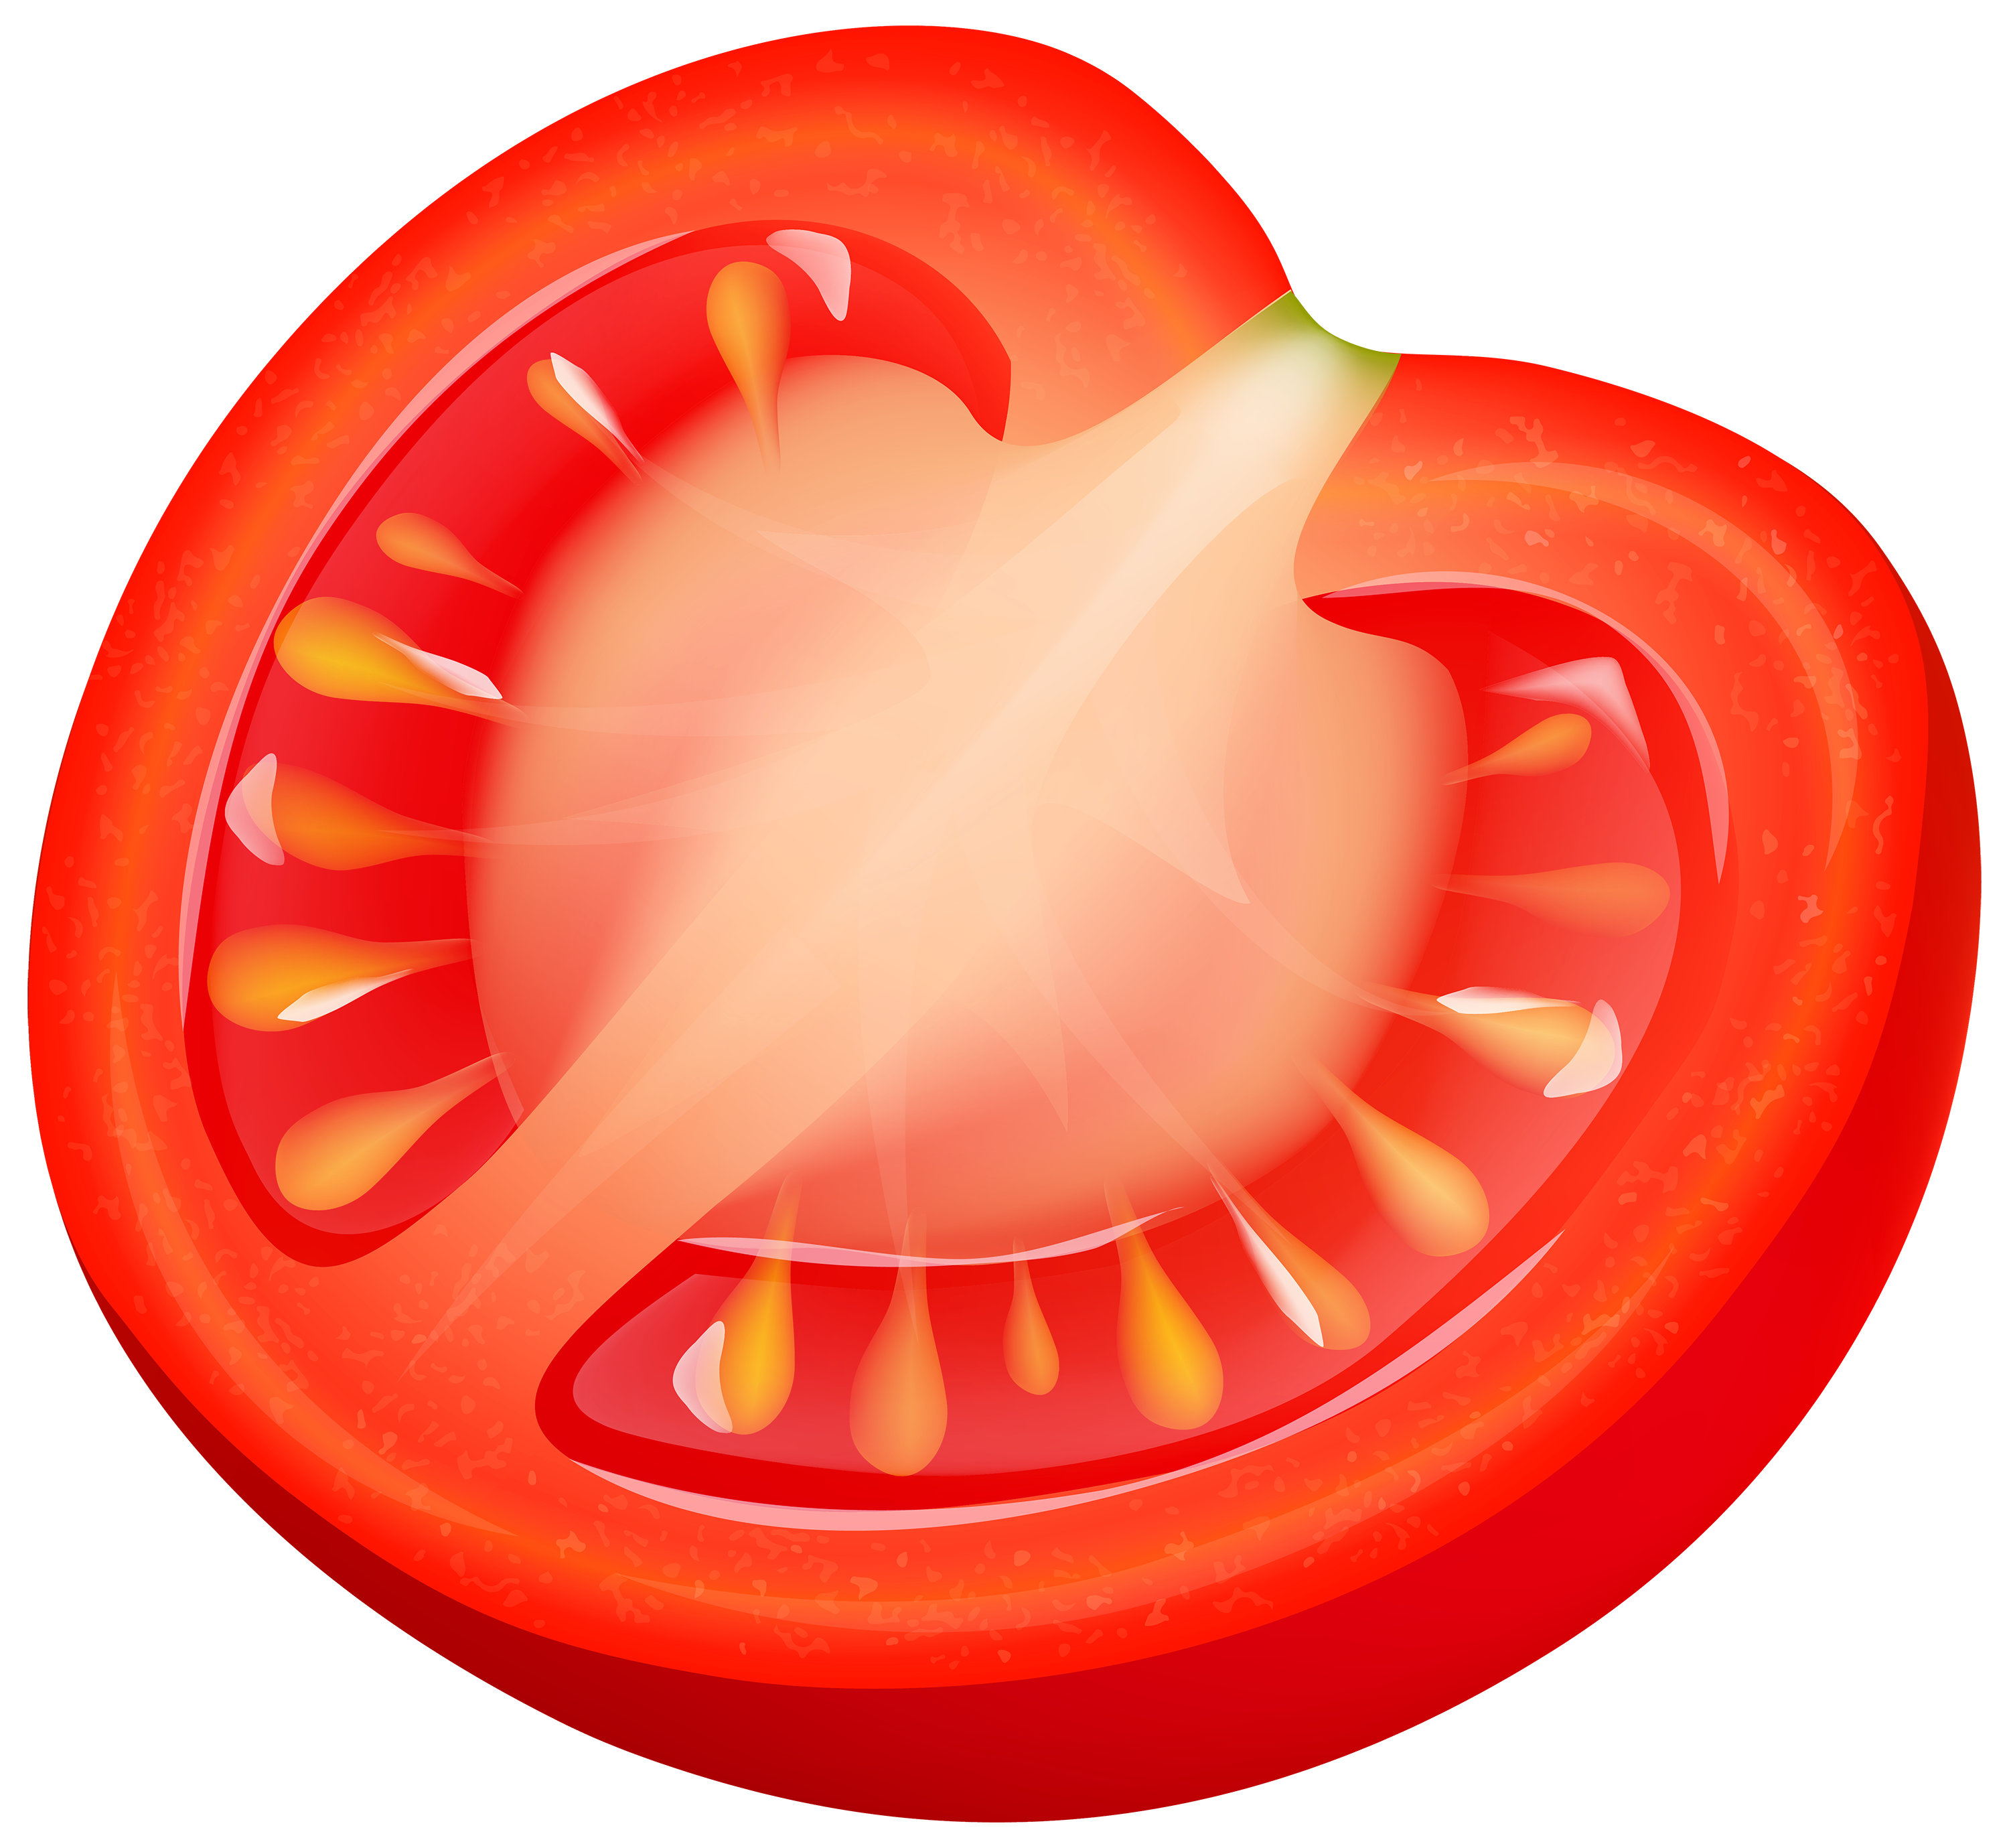 Half tomatto png best. Watermelon clipart makanan